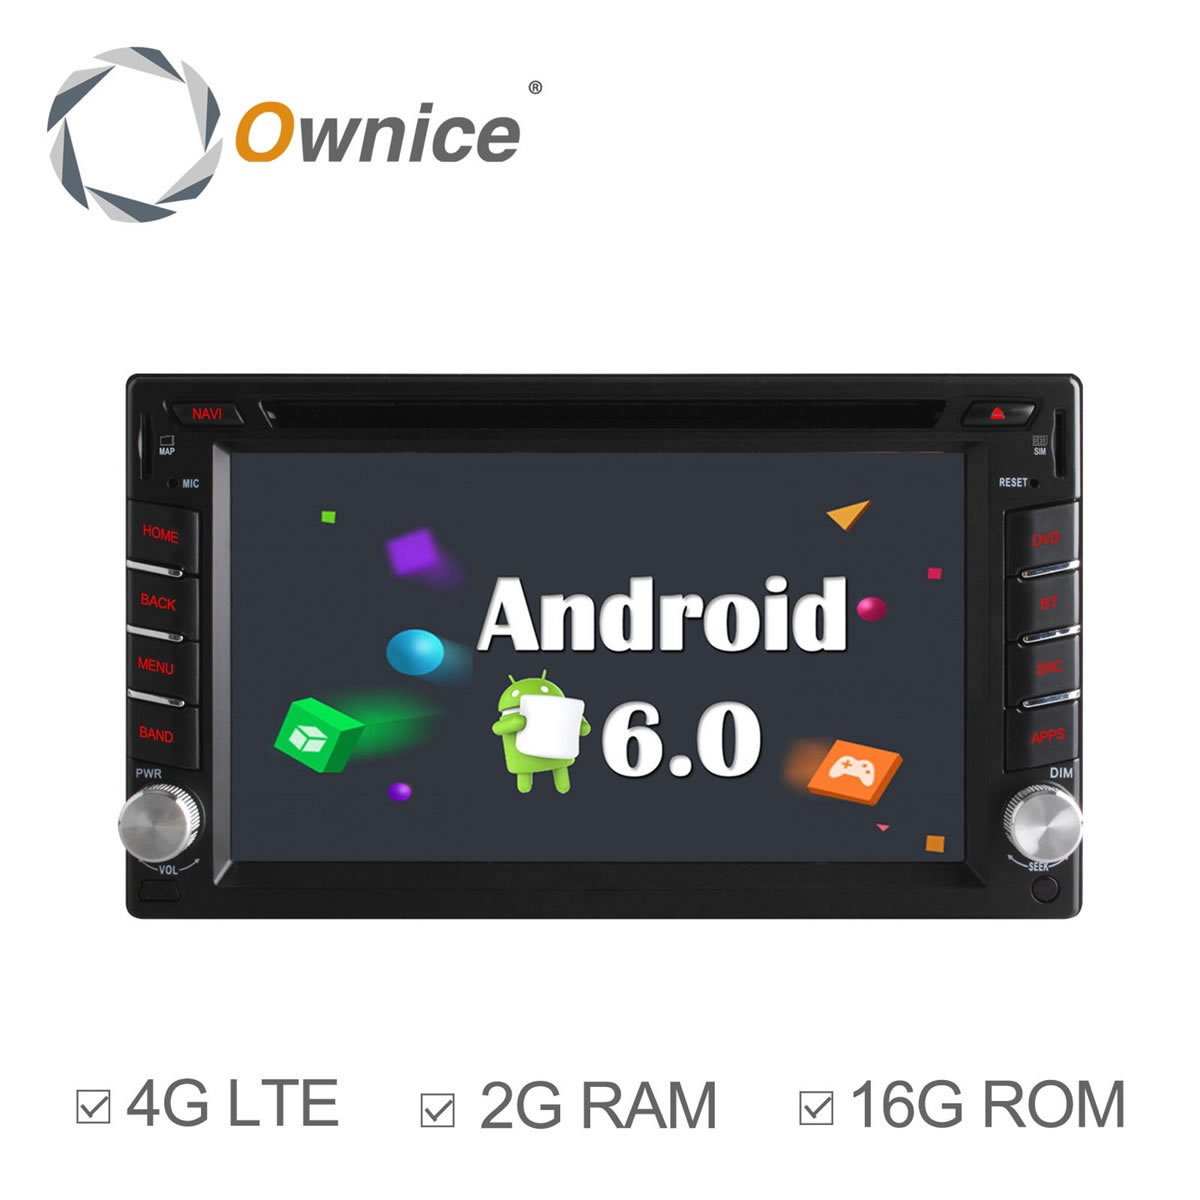 Ownice C500 Android6.0 Quad Core 2GB RAM universal Car Radio 2 din Car DVD Player GPS Navi Stereo video 4G LTE Network 16GB ROM